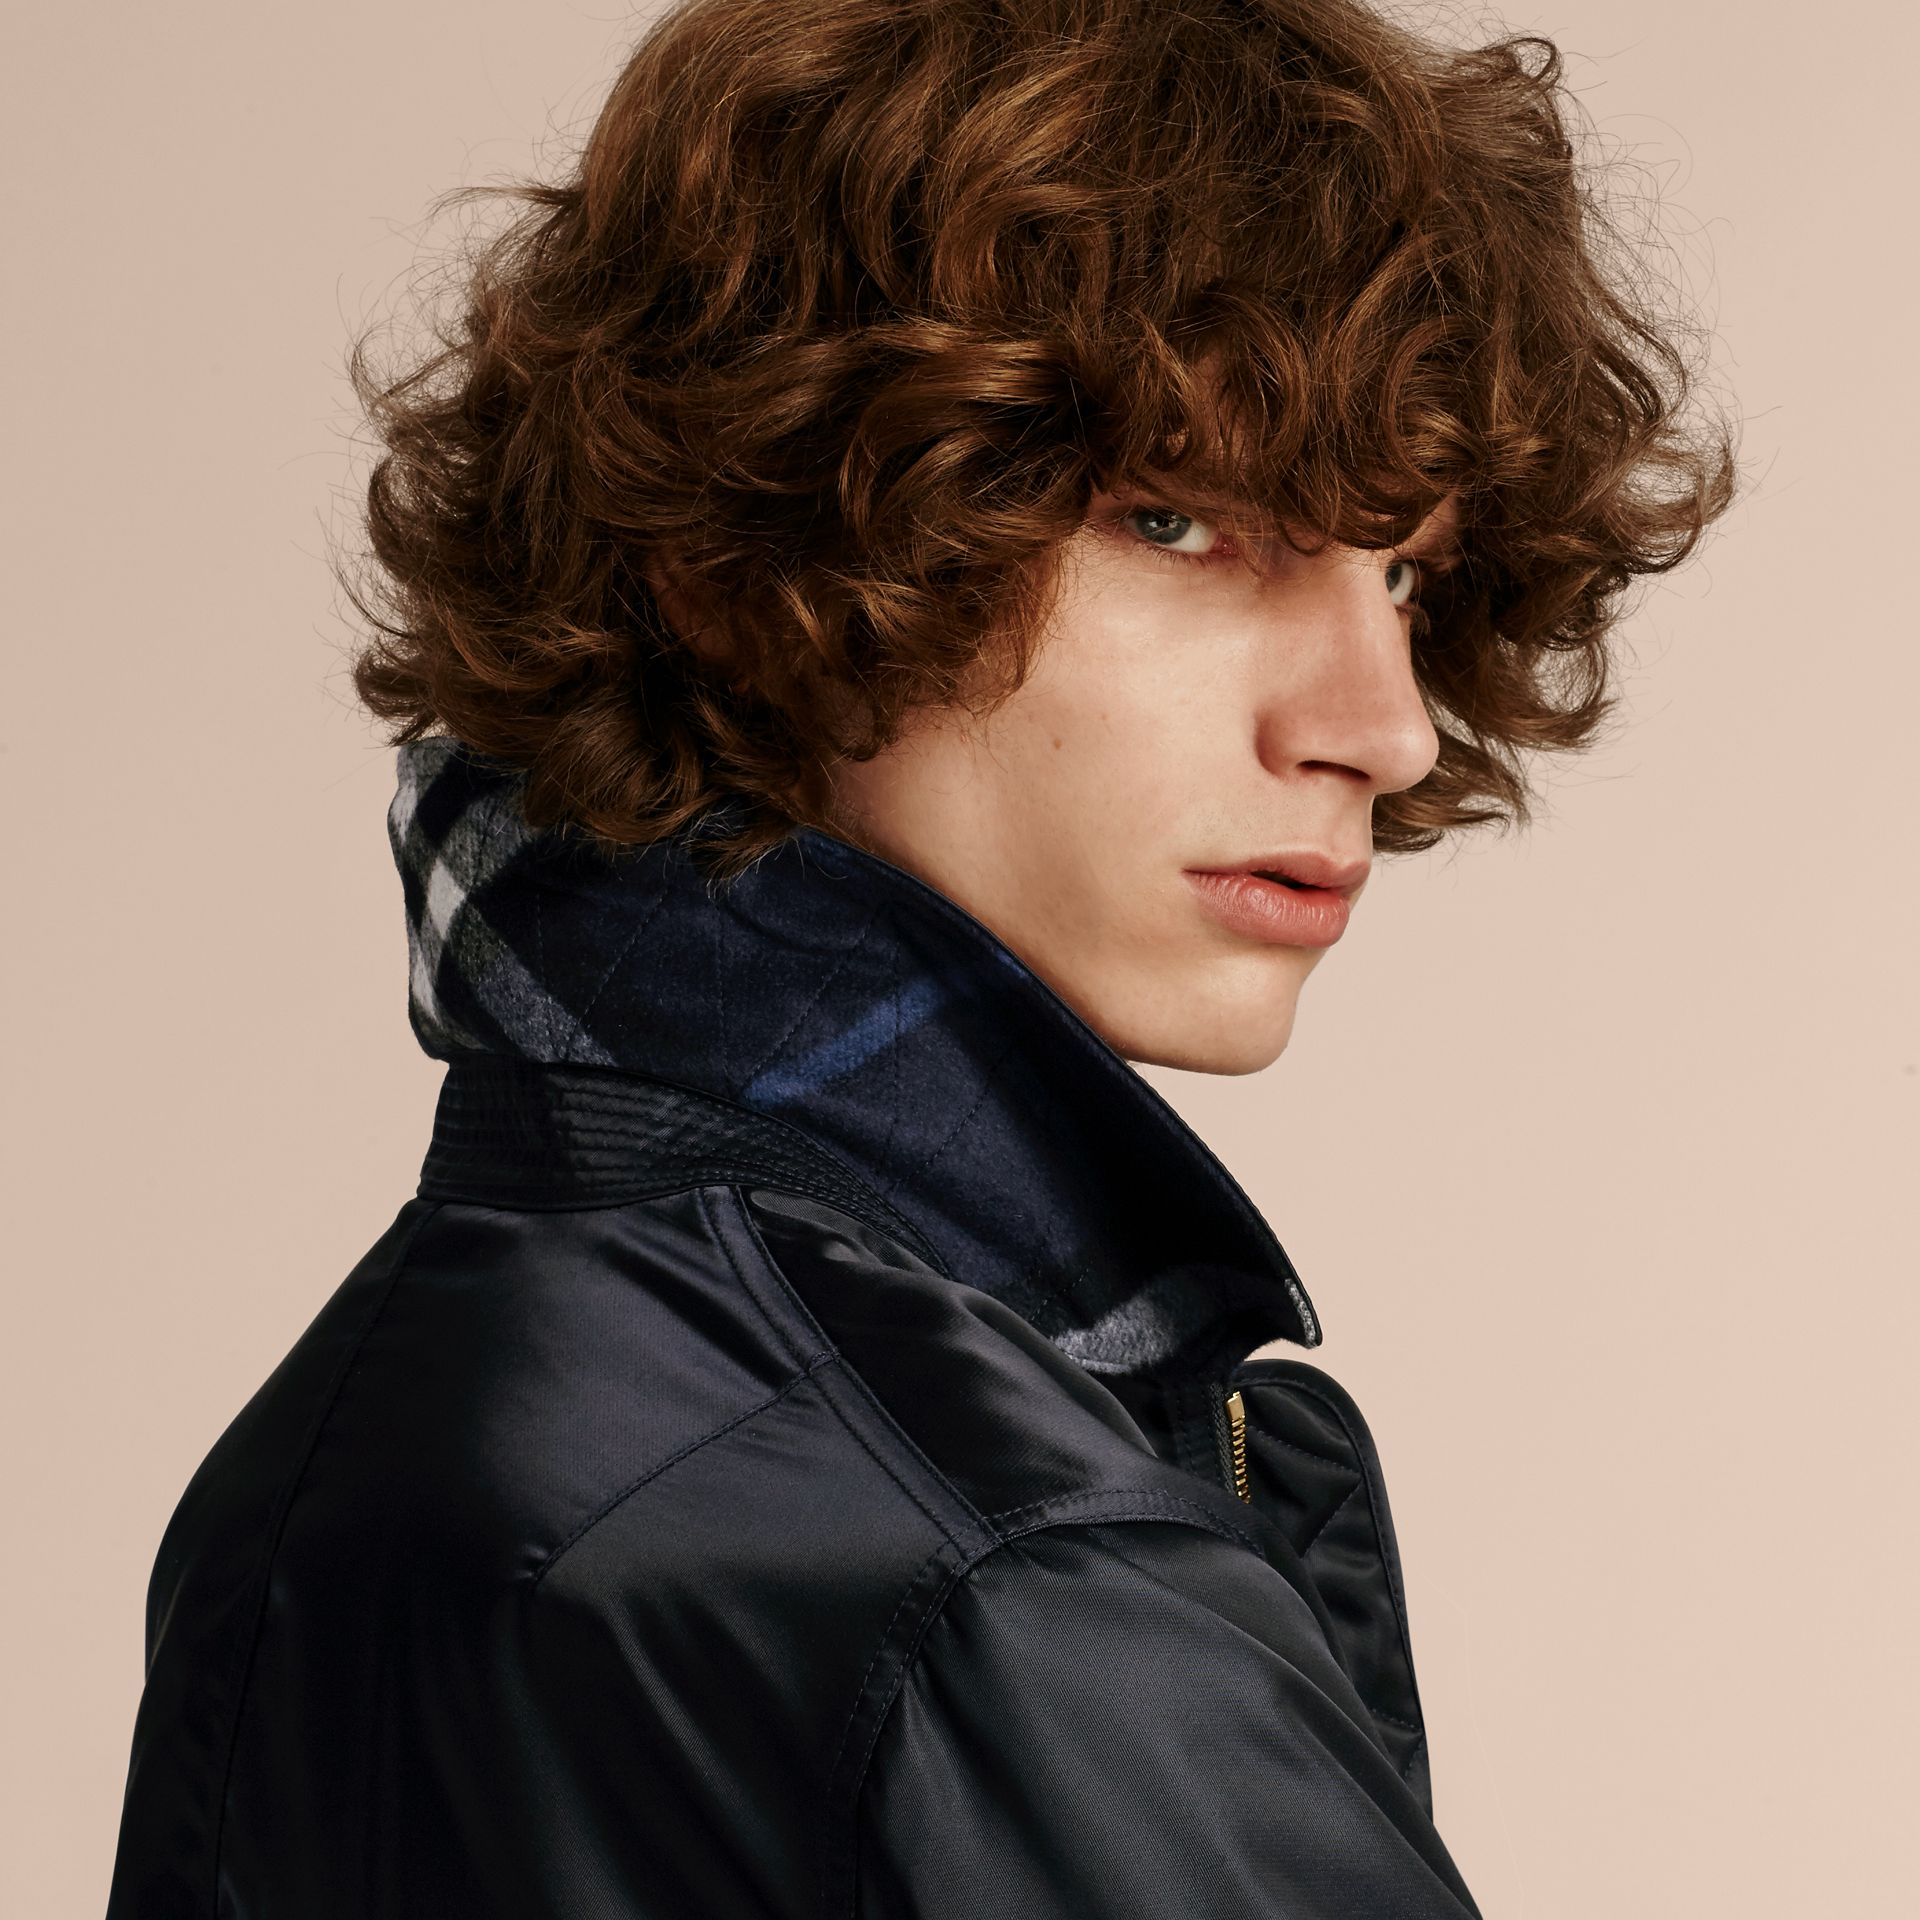 Navy Satin Bomber Jacket with Check Undercollar Navy - gallery image 5